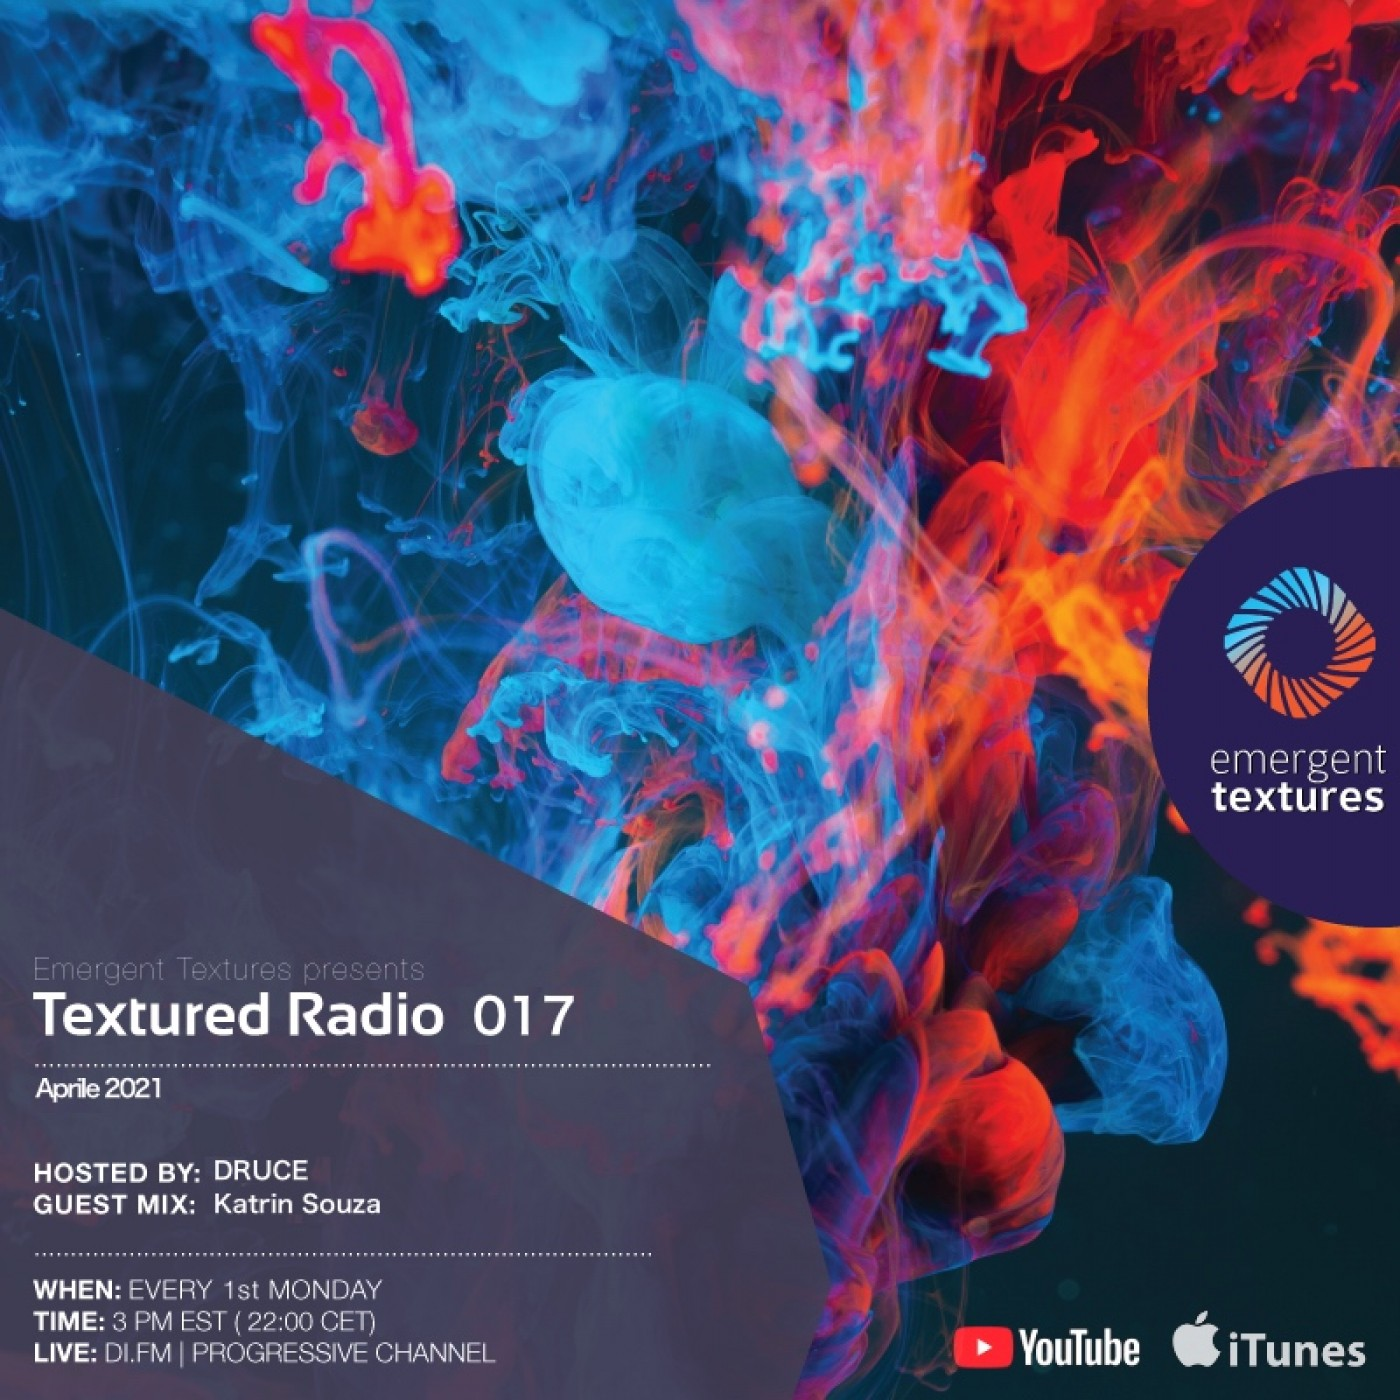 Textured Radio 017 hosted by Druce